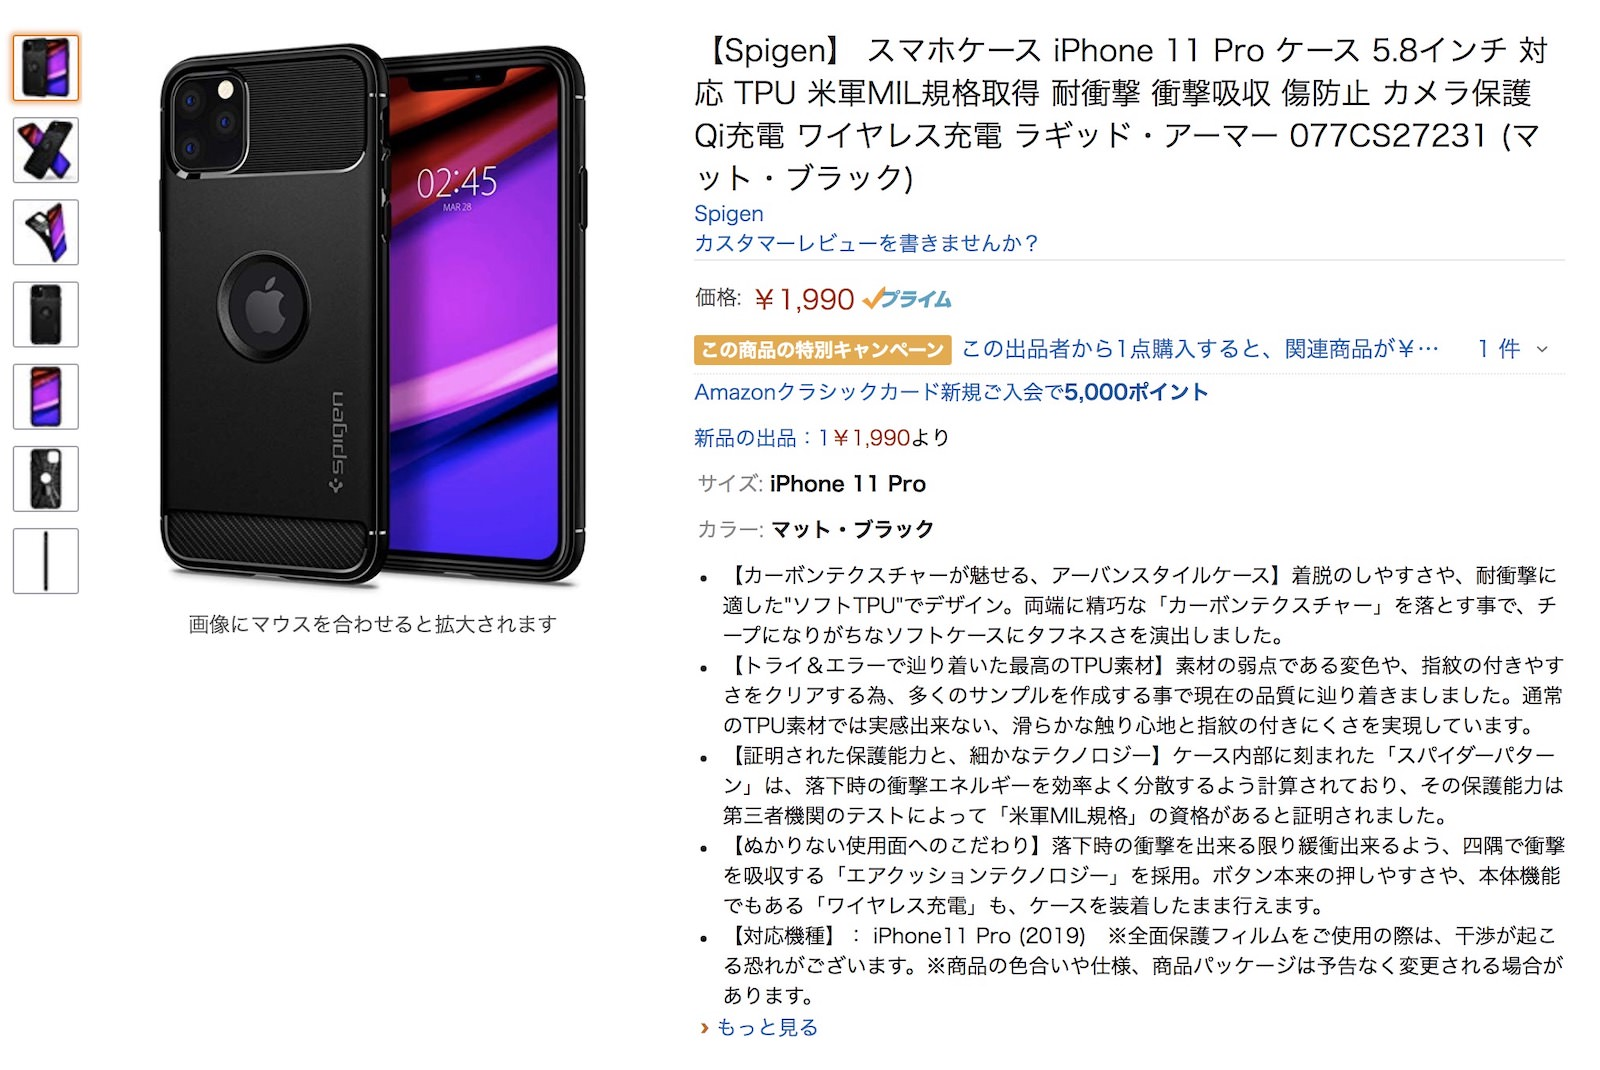 Spigen-iphone11pro-case.jpg